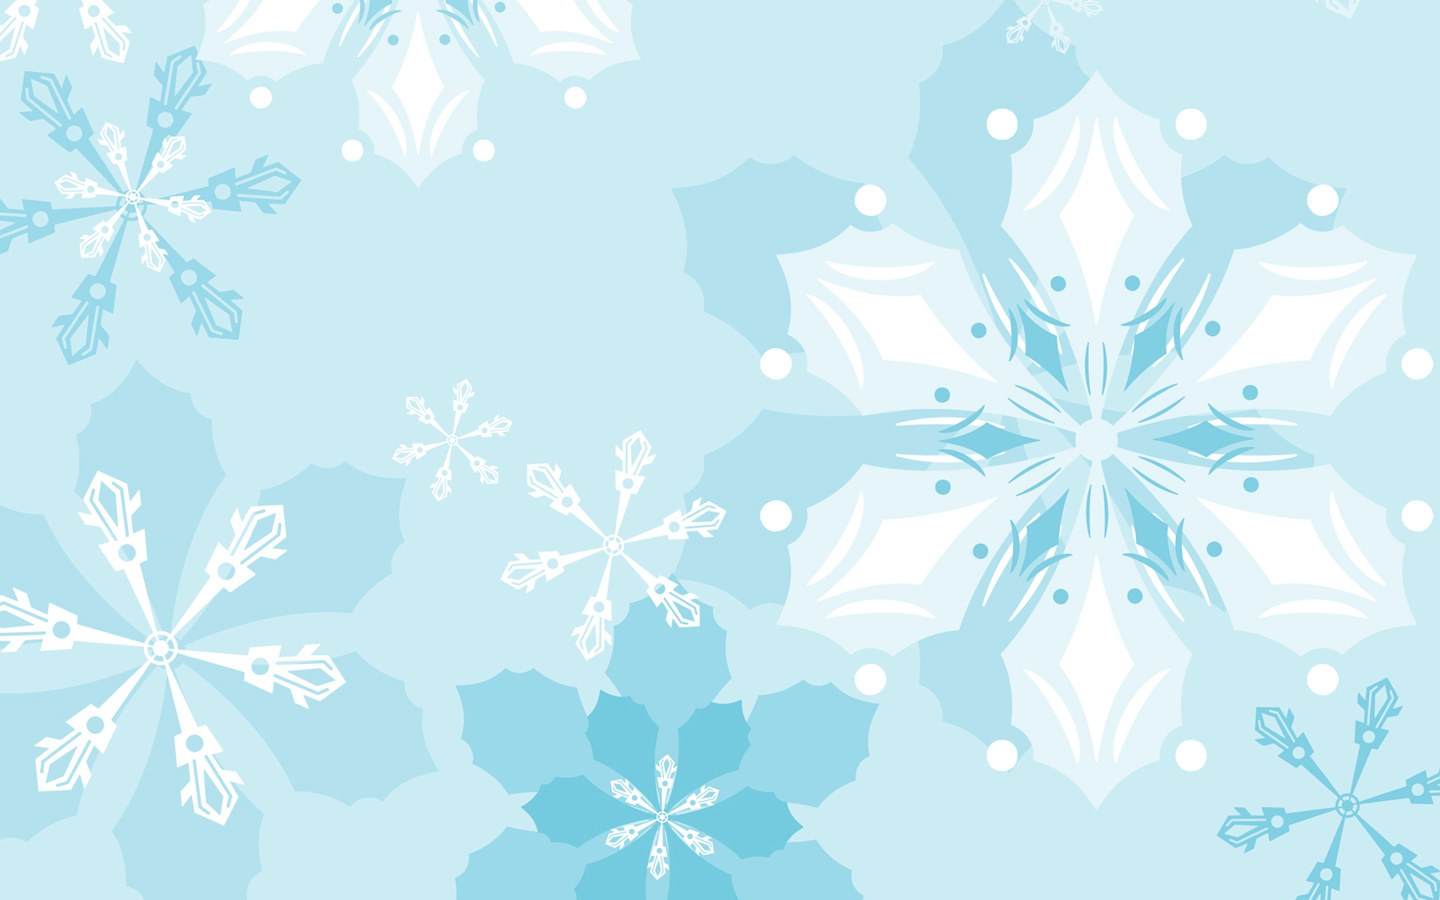 abstract winter background free - photo #1